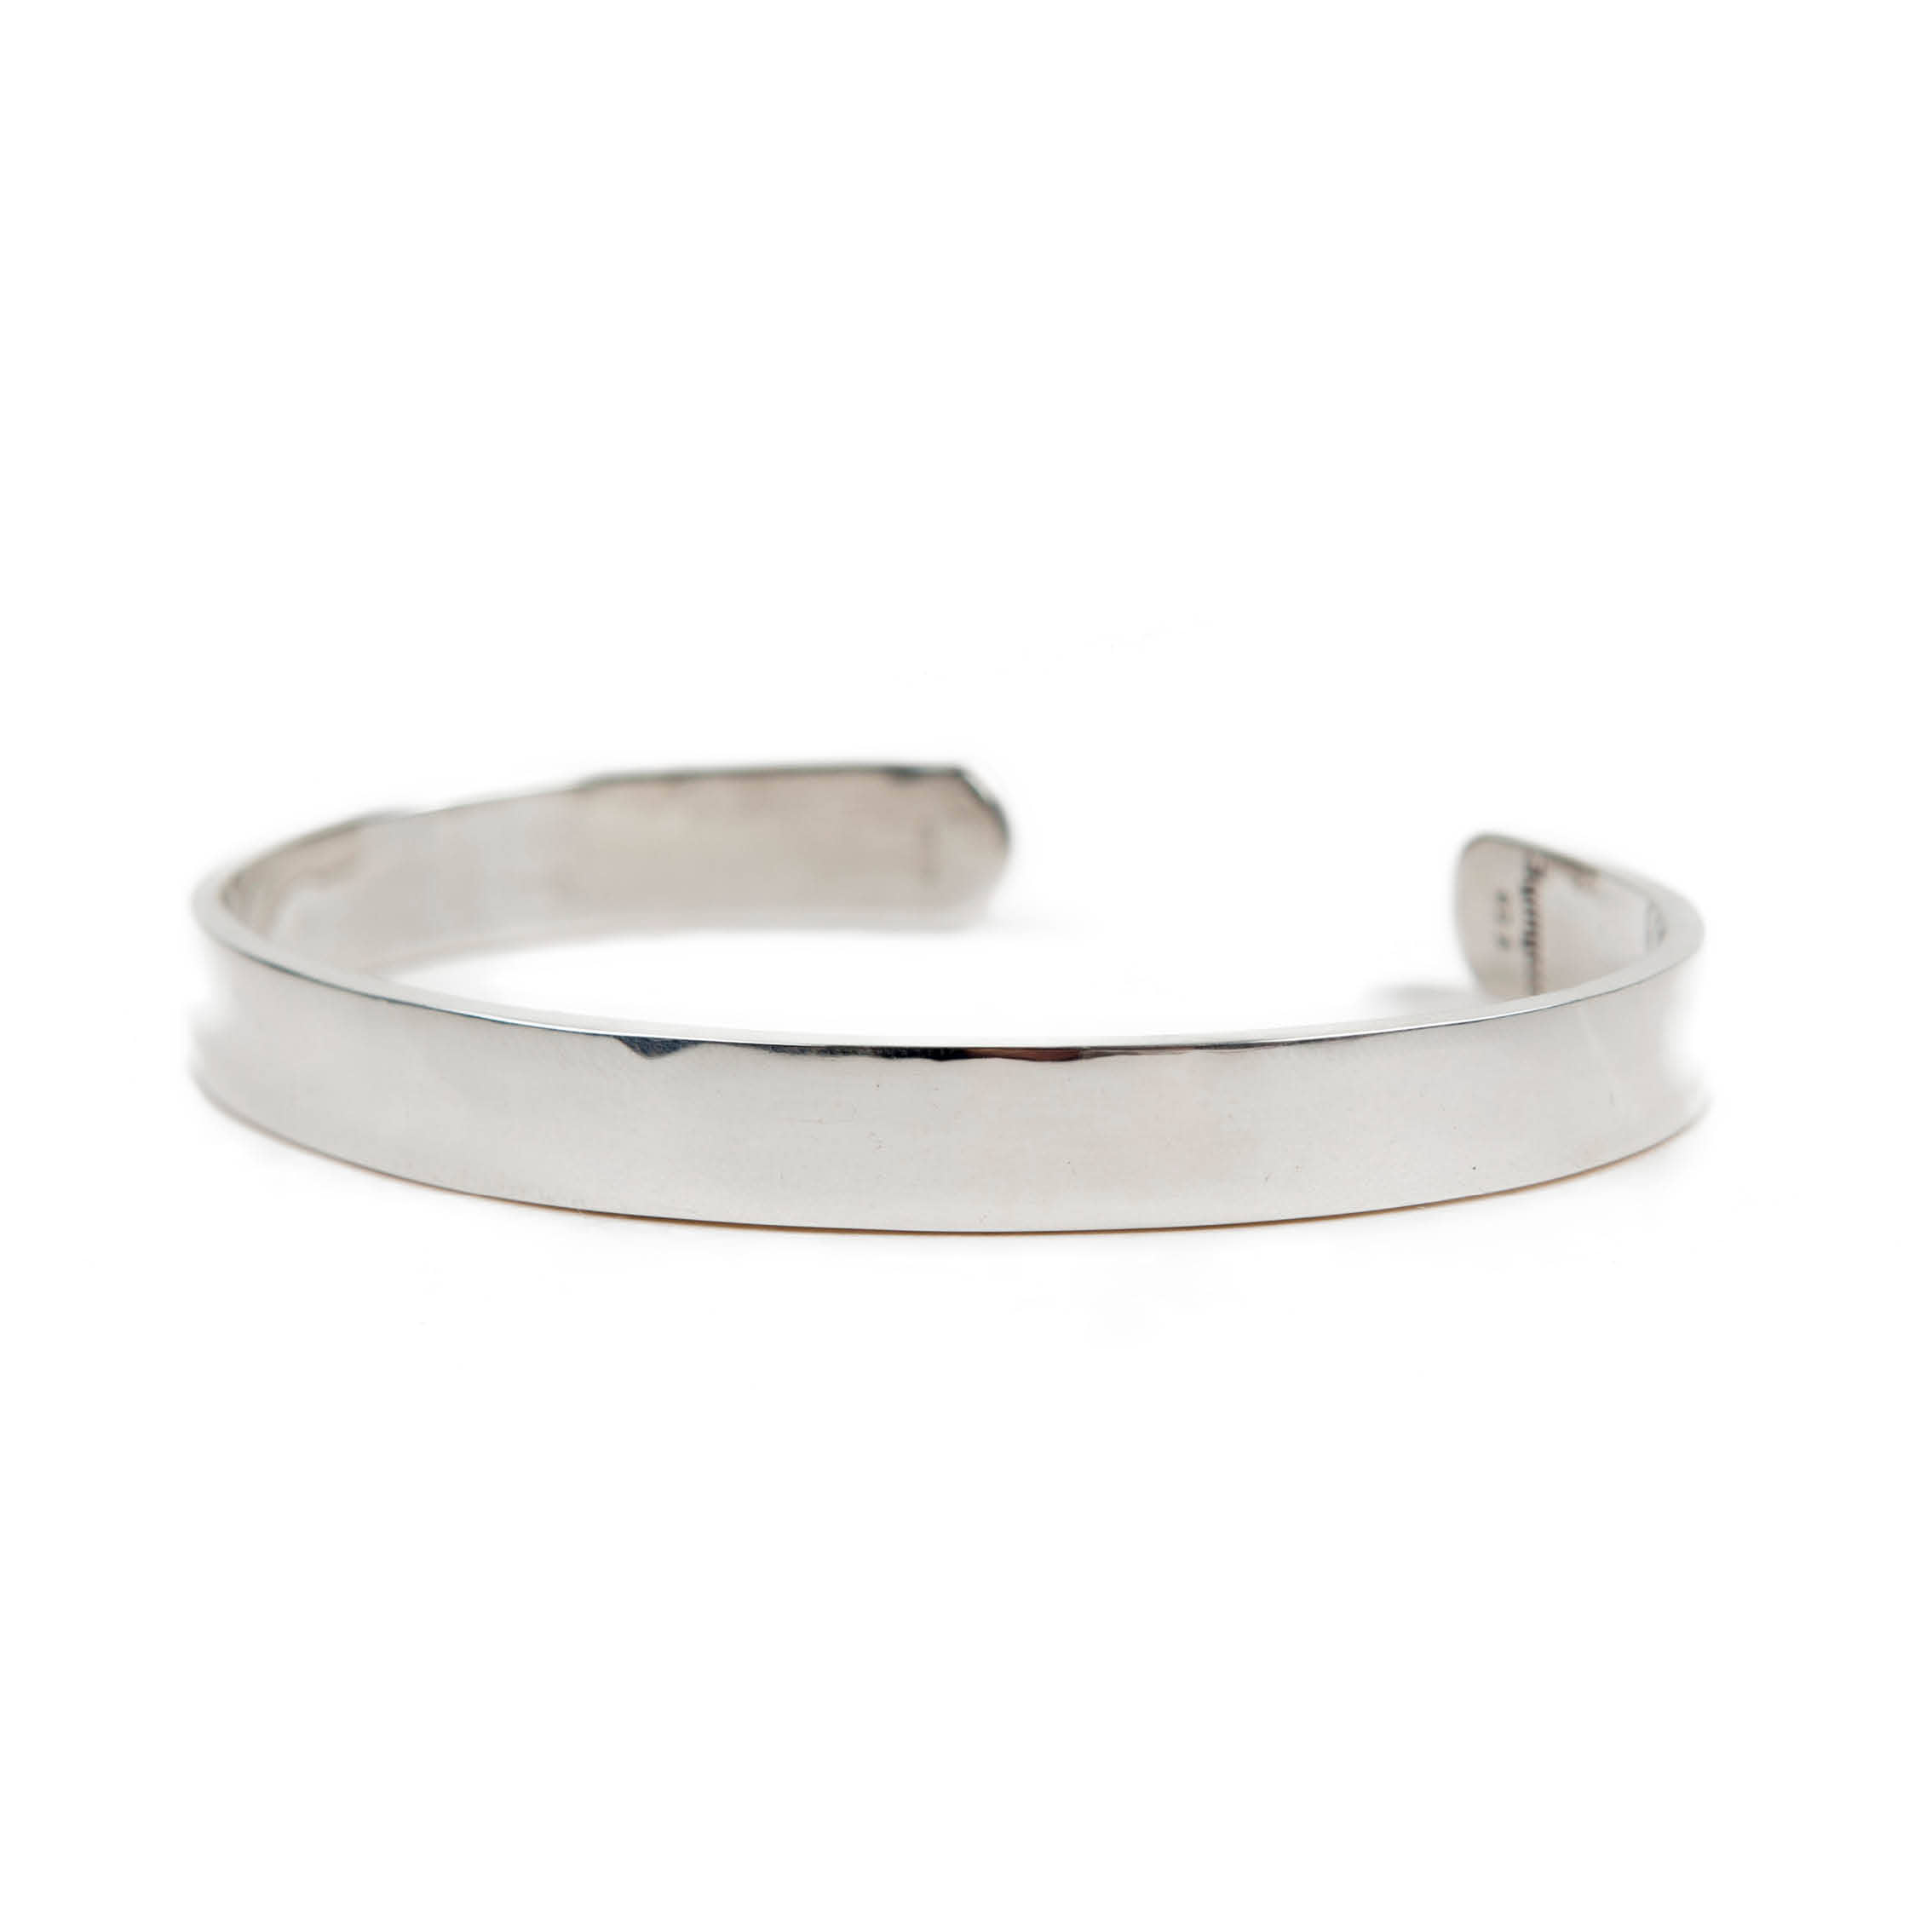 AGINGCCC - 257# BASIC SILVER BANGLE